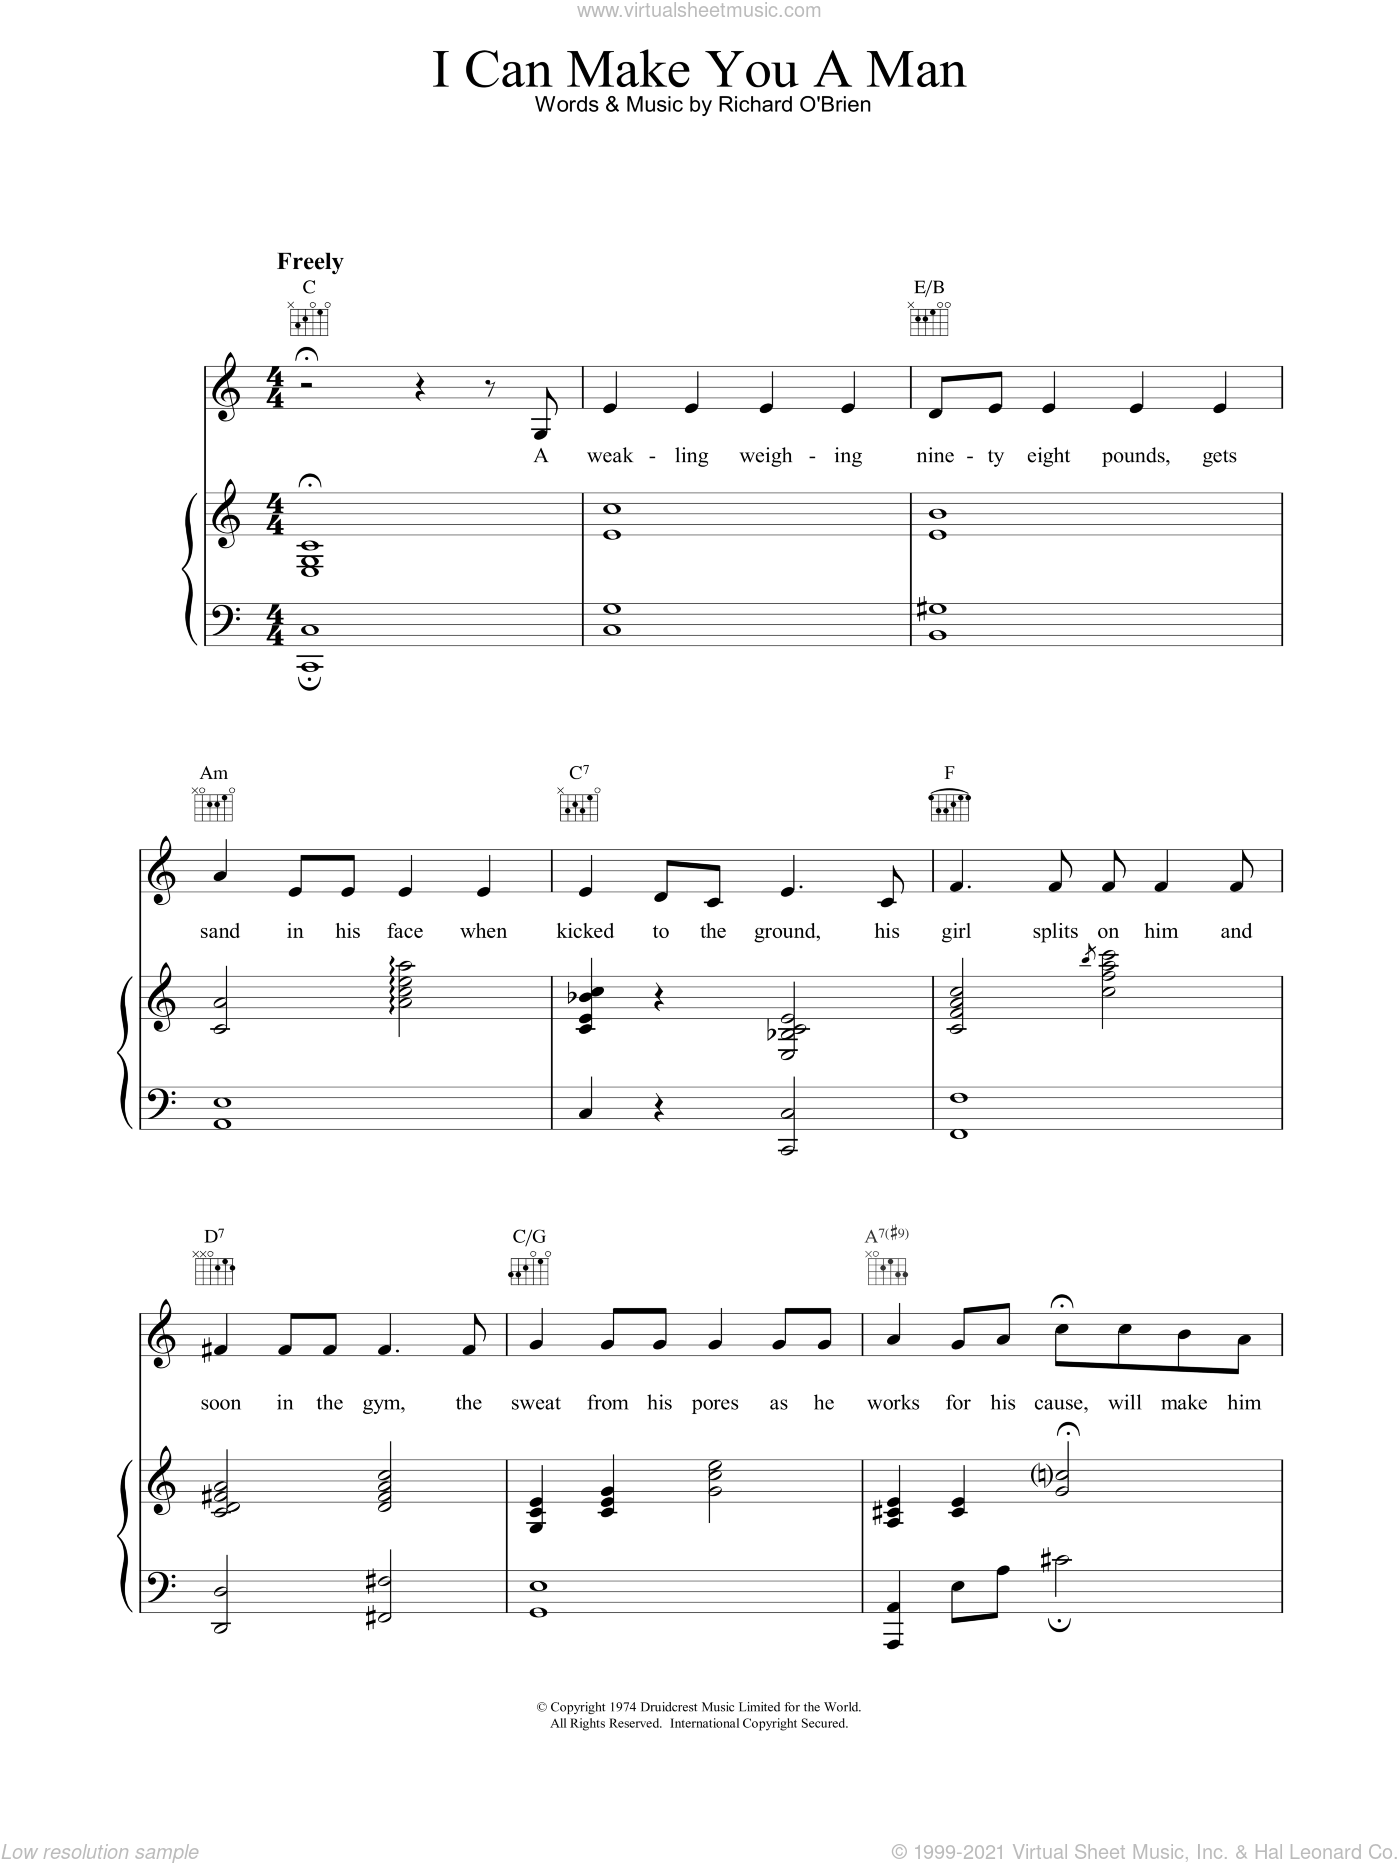 I Can Make You A Man sheet music for voice, piano or guitar by Richard O'Brien